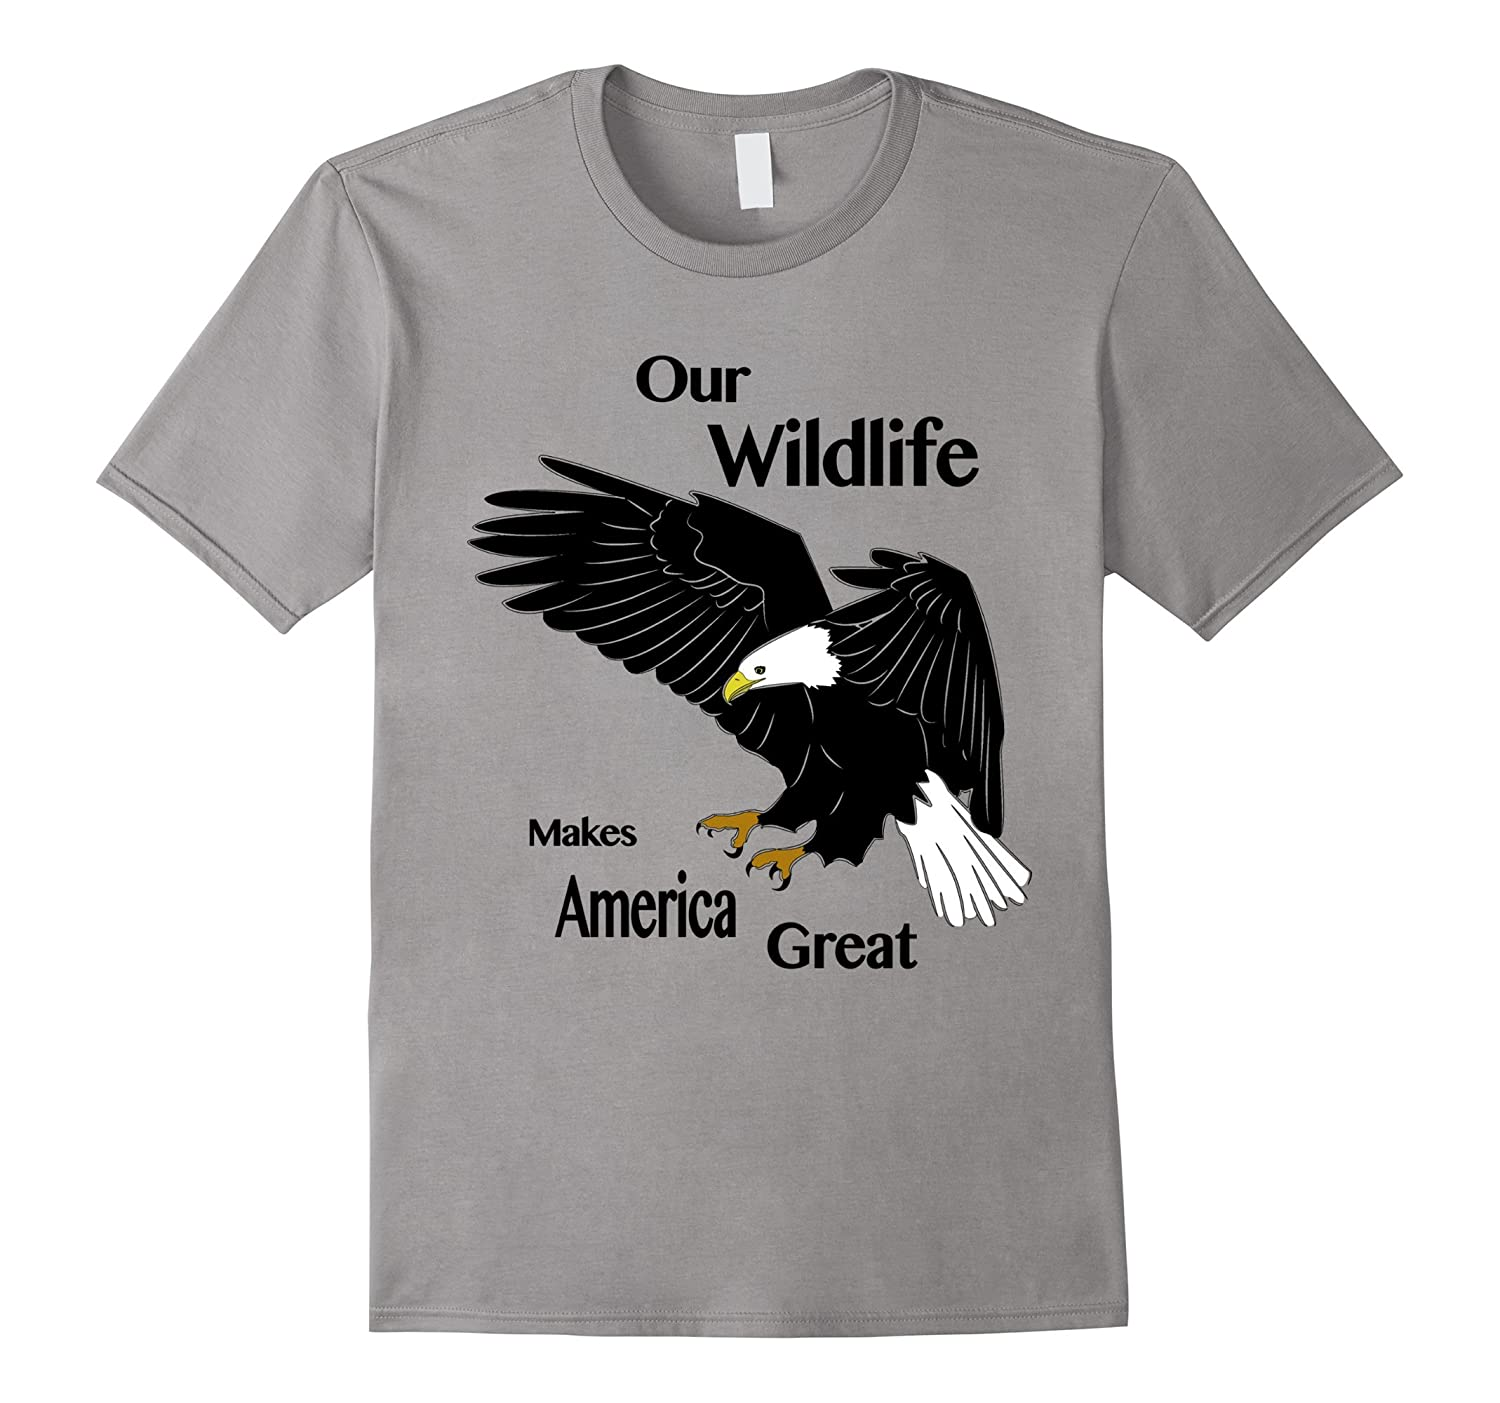 patriotic wildlife conservation t shirt fl